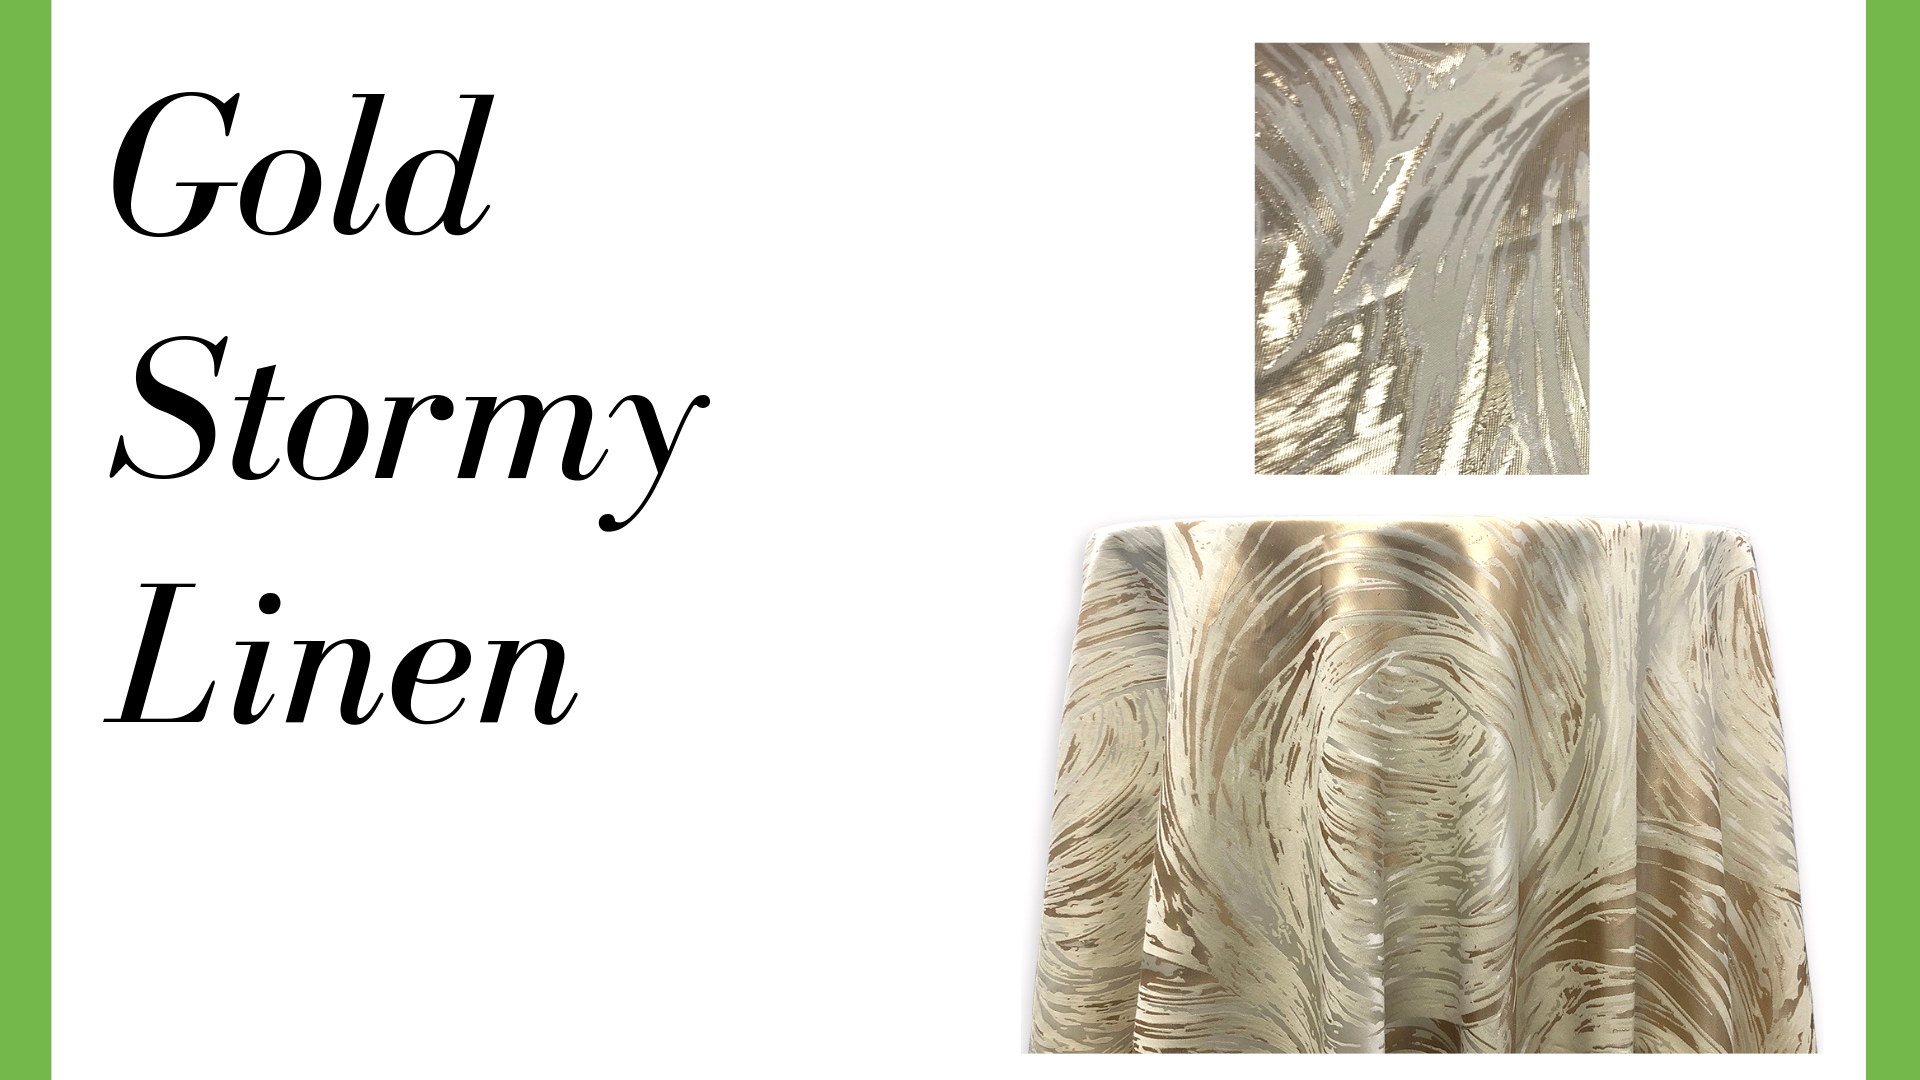 Gold Stormy Linen